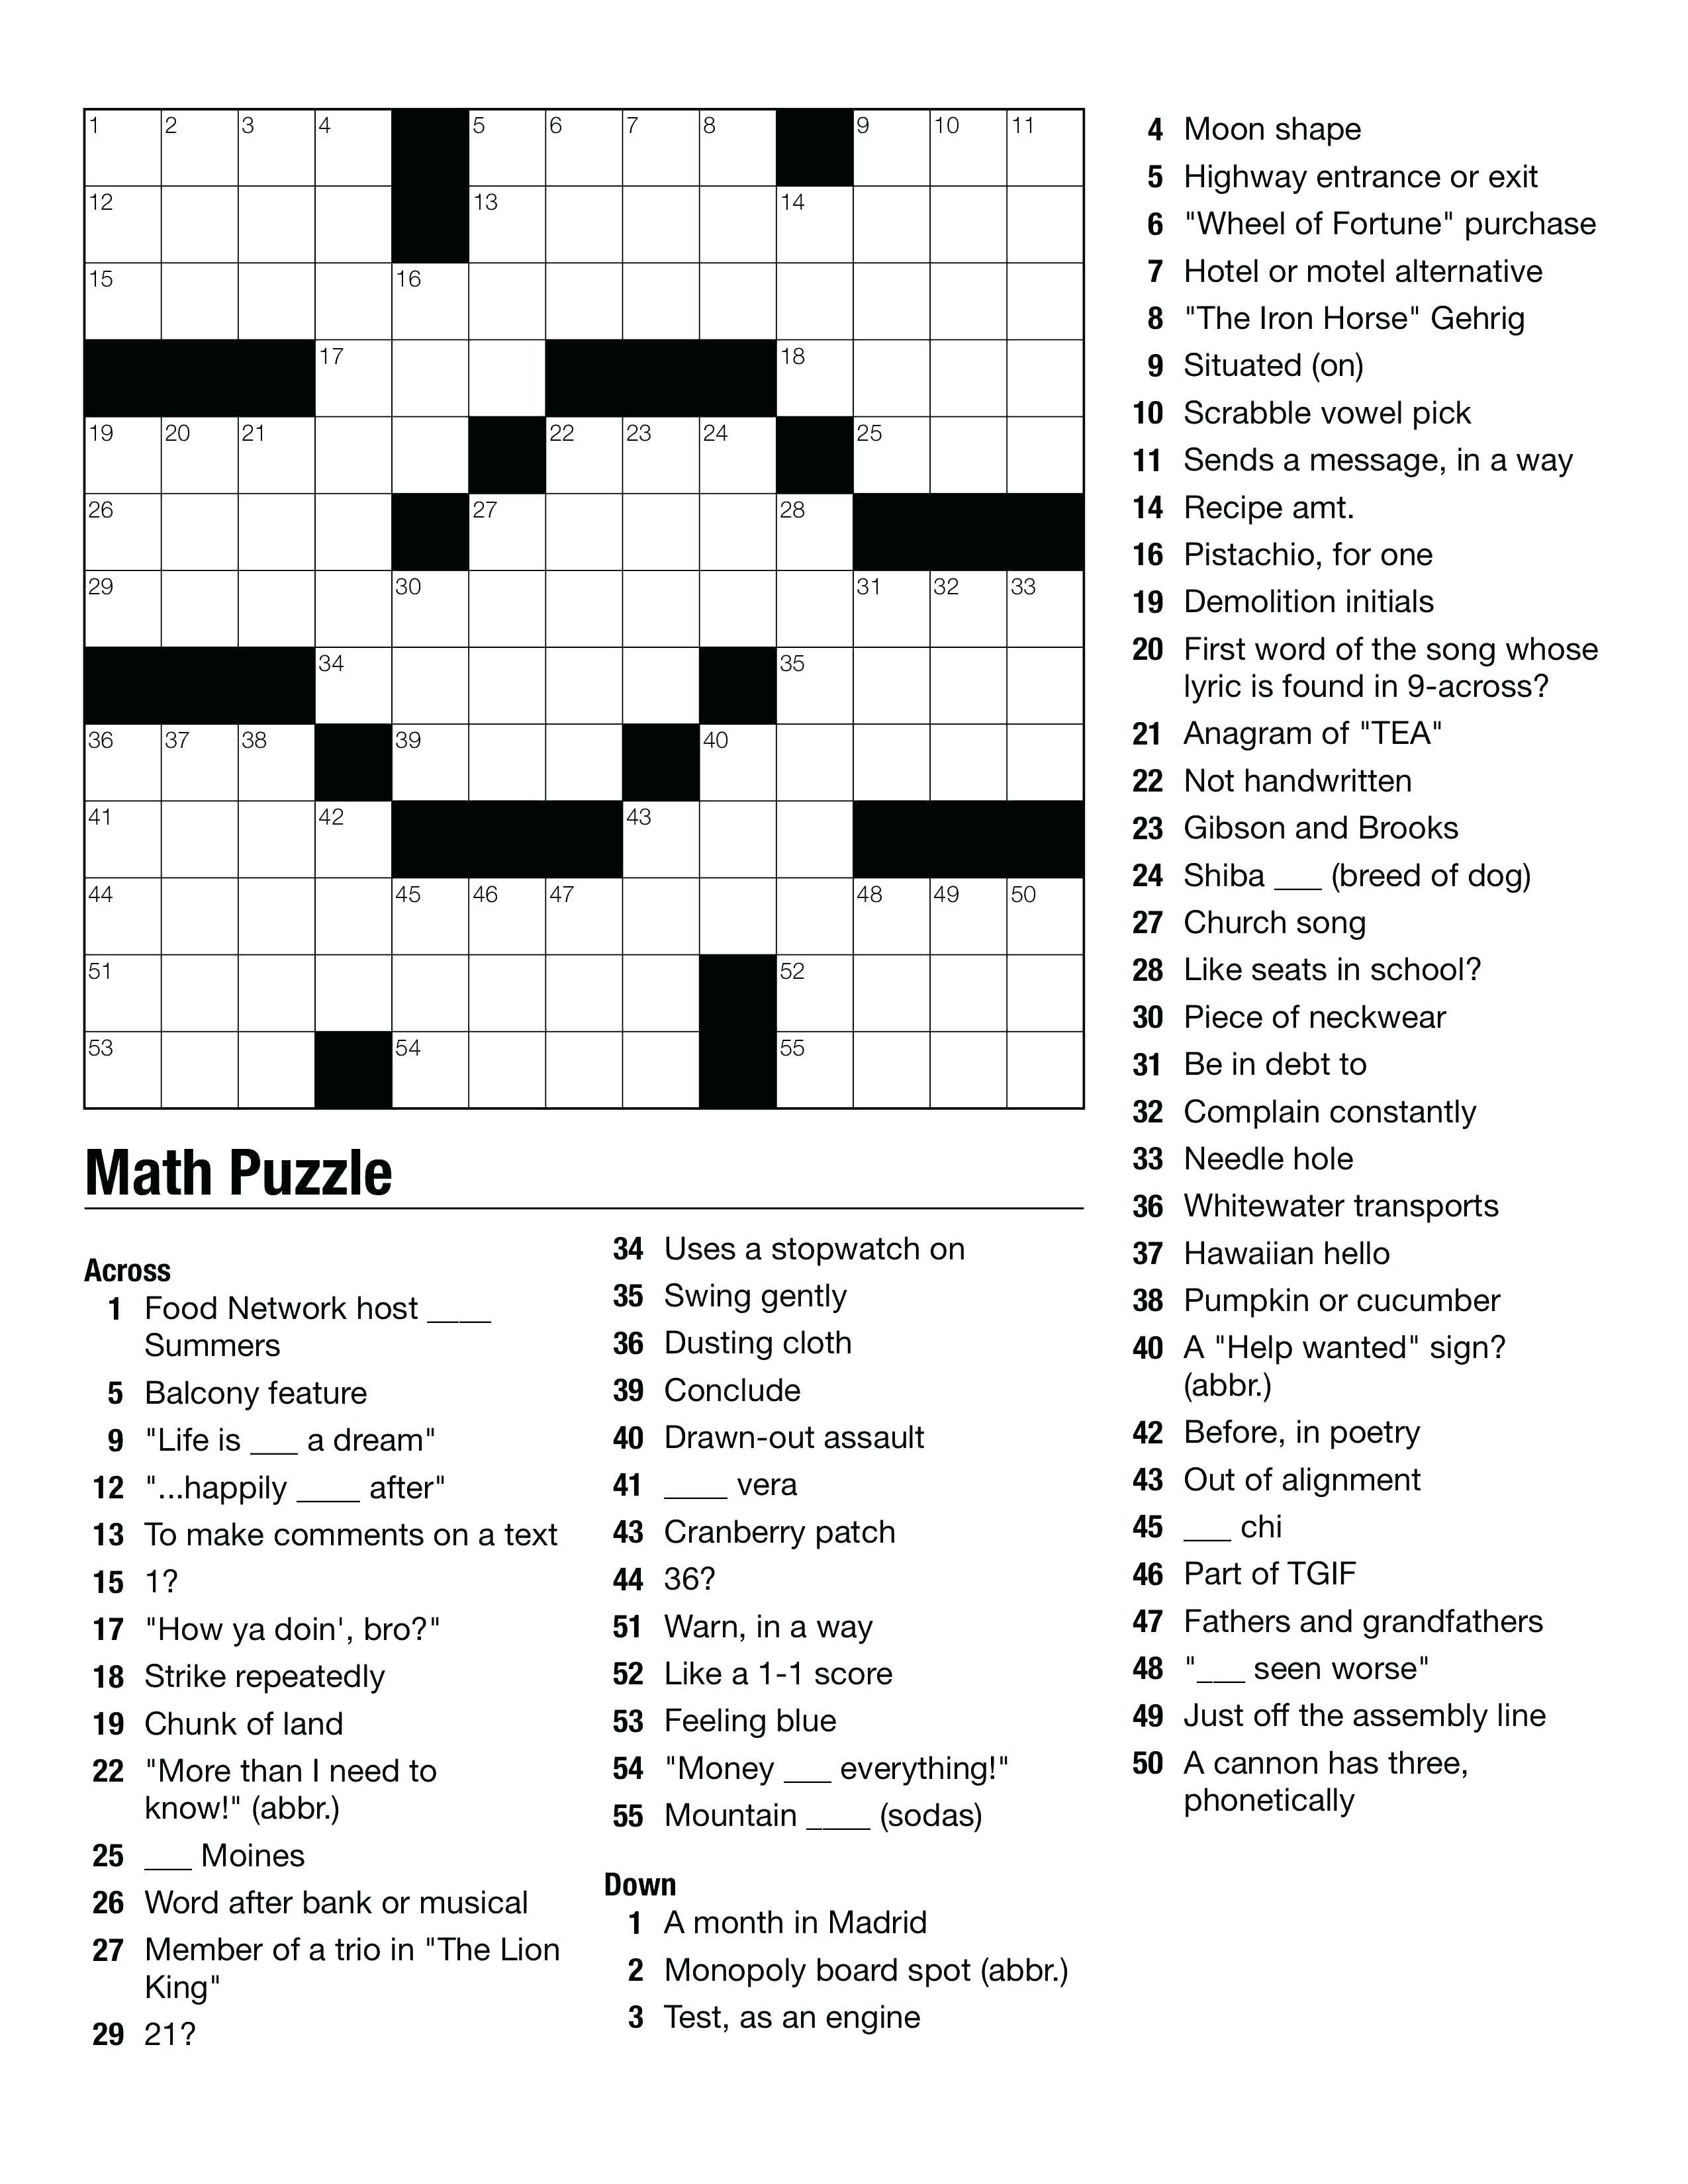 Geometry Puzzles Math Geometry Images Teaching Ideas On Crossword - Printable Puzzles For High School